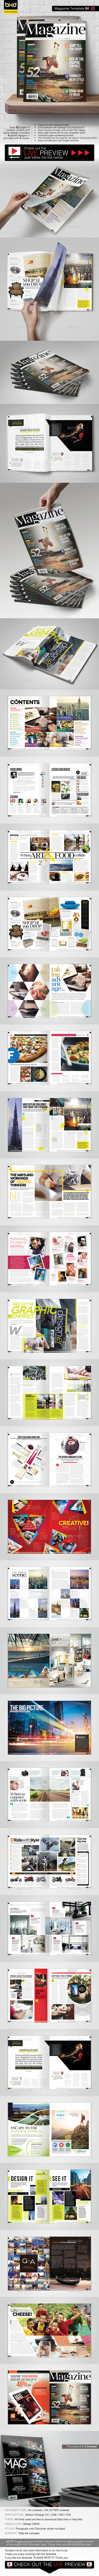 GraphicRiver Magazine Template InDesign 52 Page Layout V4 9342573